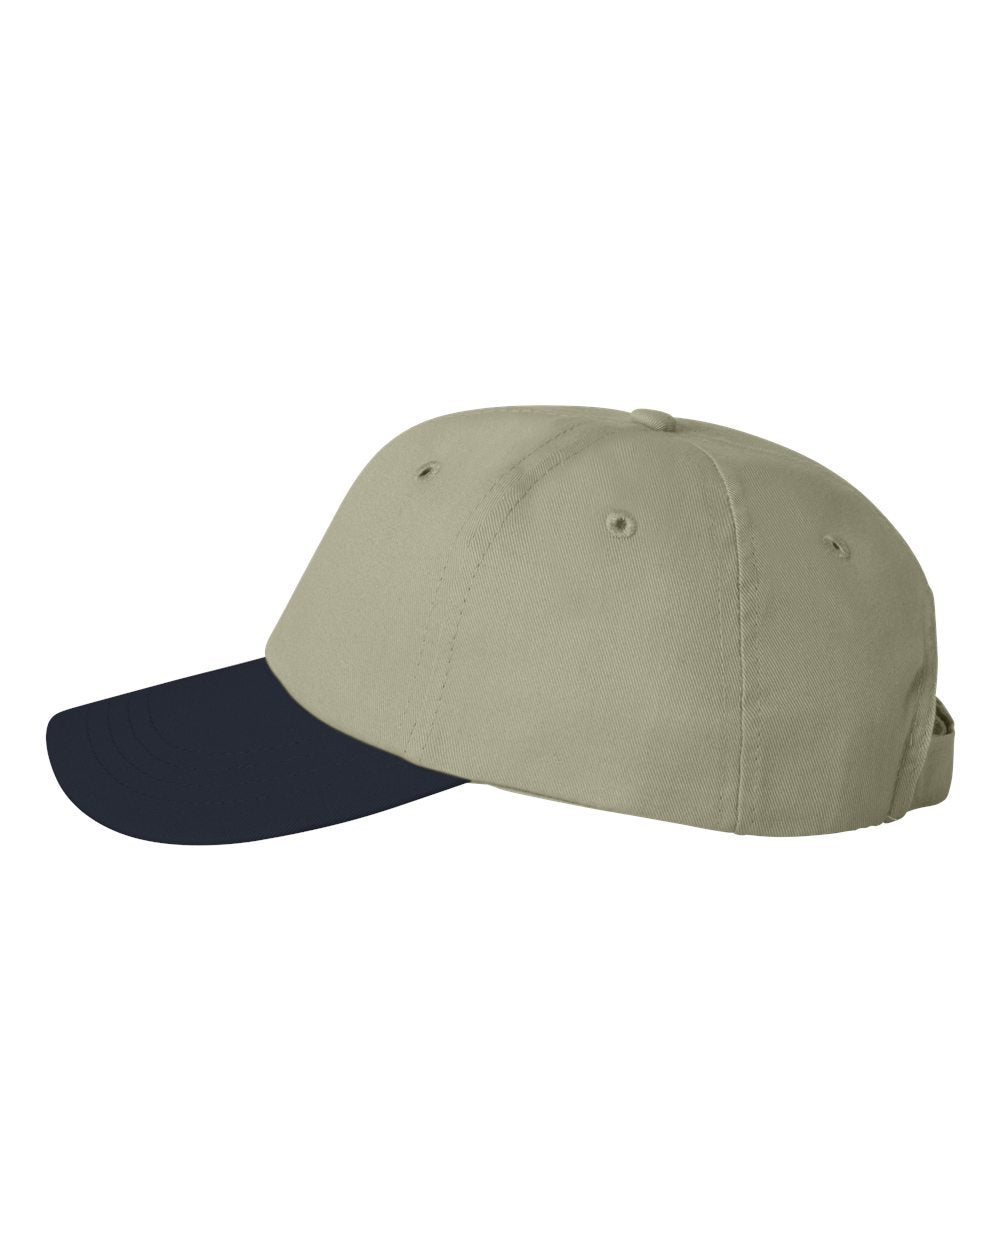 Monogram Adult Cap Valucap Econ Cotton Twill Khaki/Navy